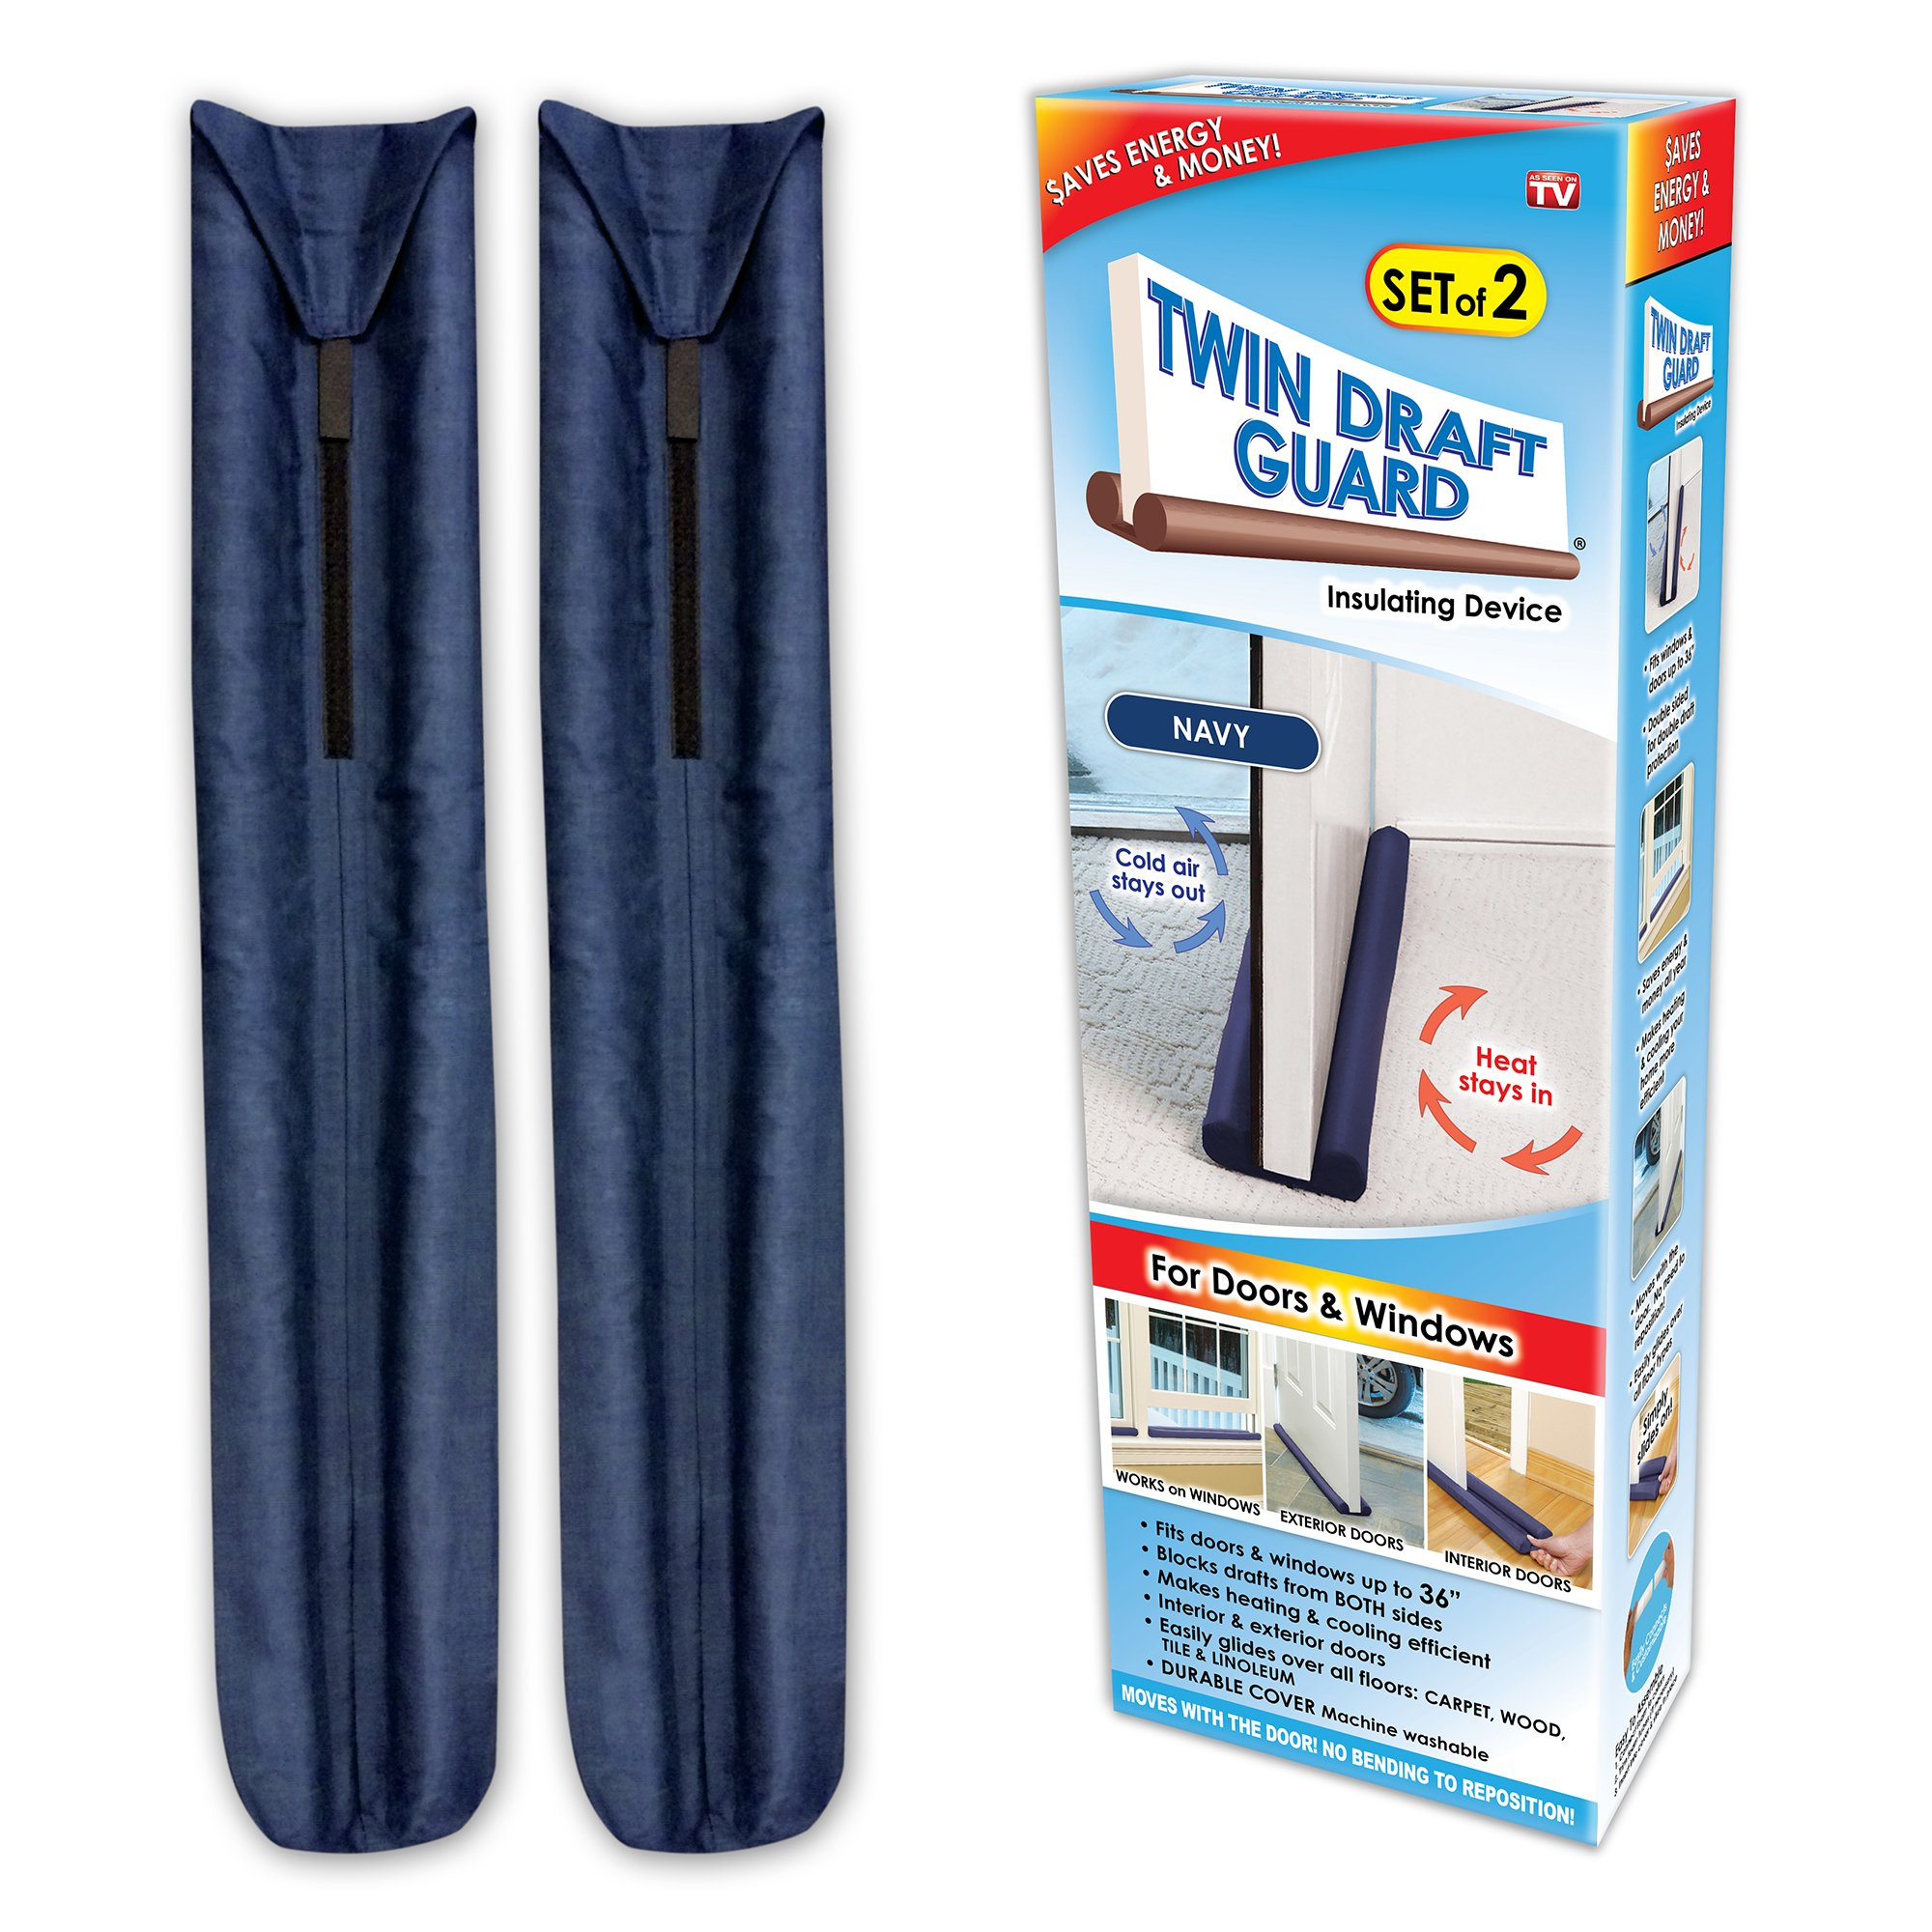 Twin Draft Guard Value Pack of 2, Blue Energy Saving Under Door Draft Stopper by Twin Draft Guard